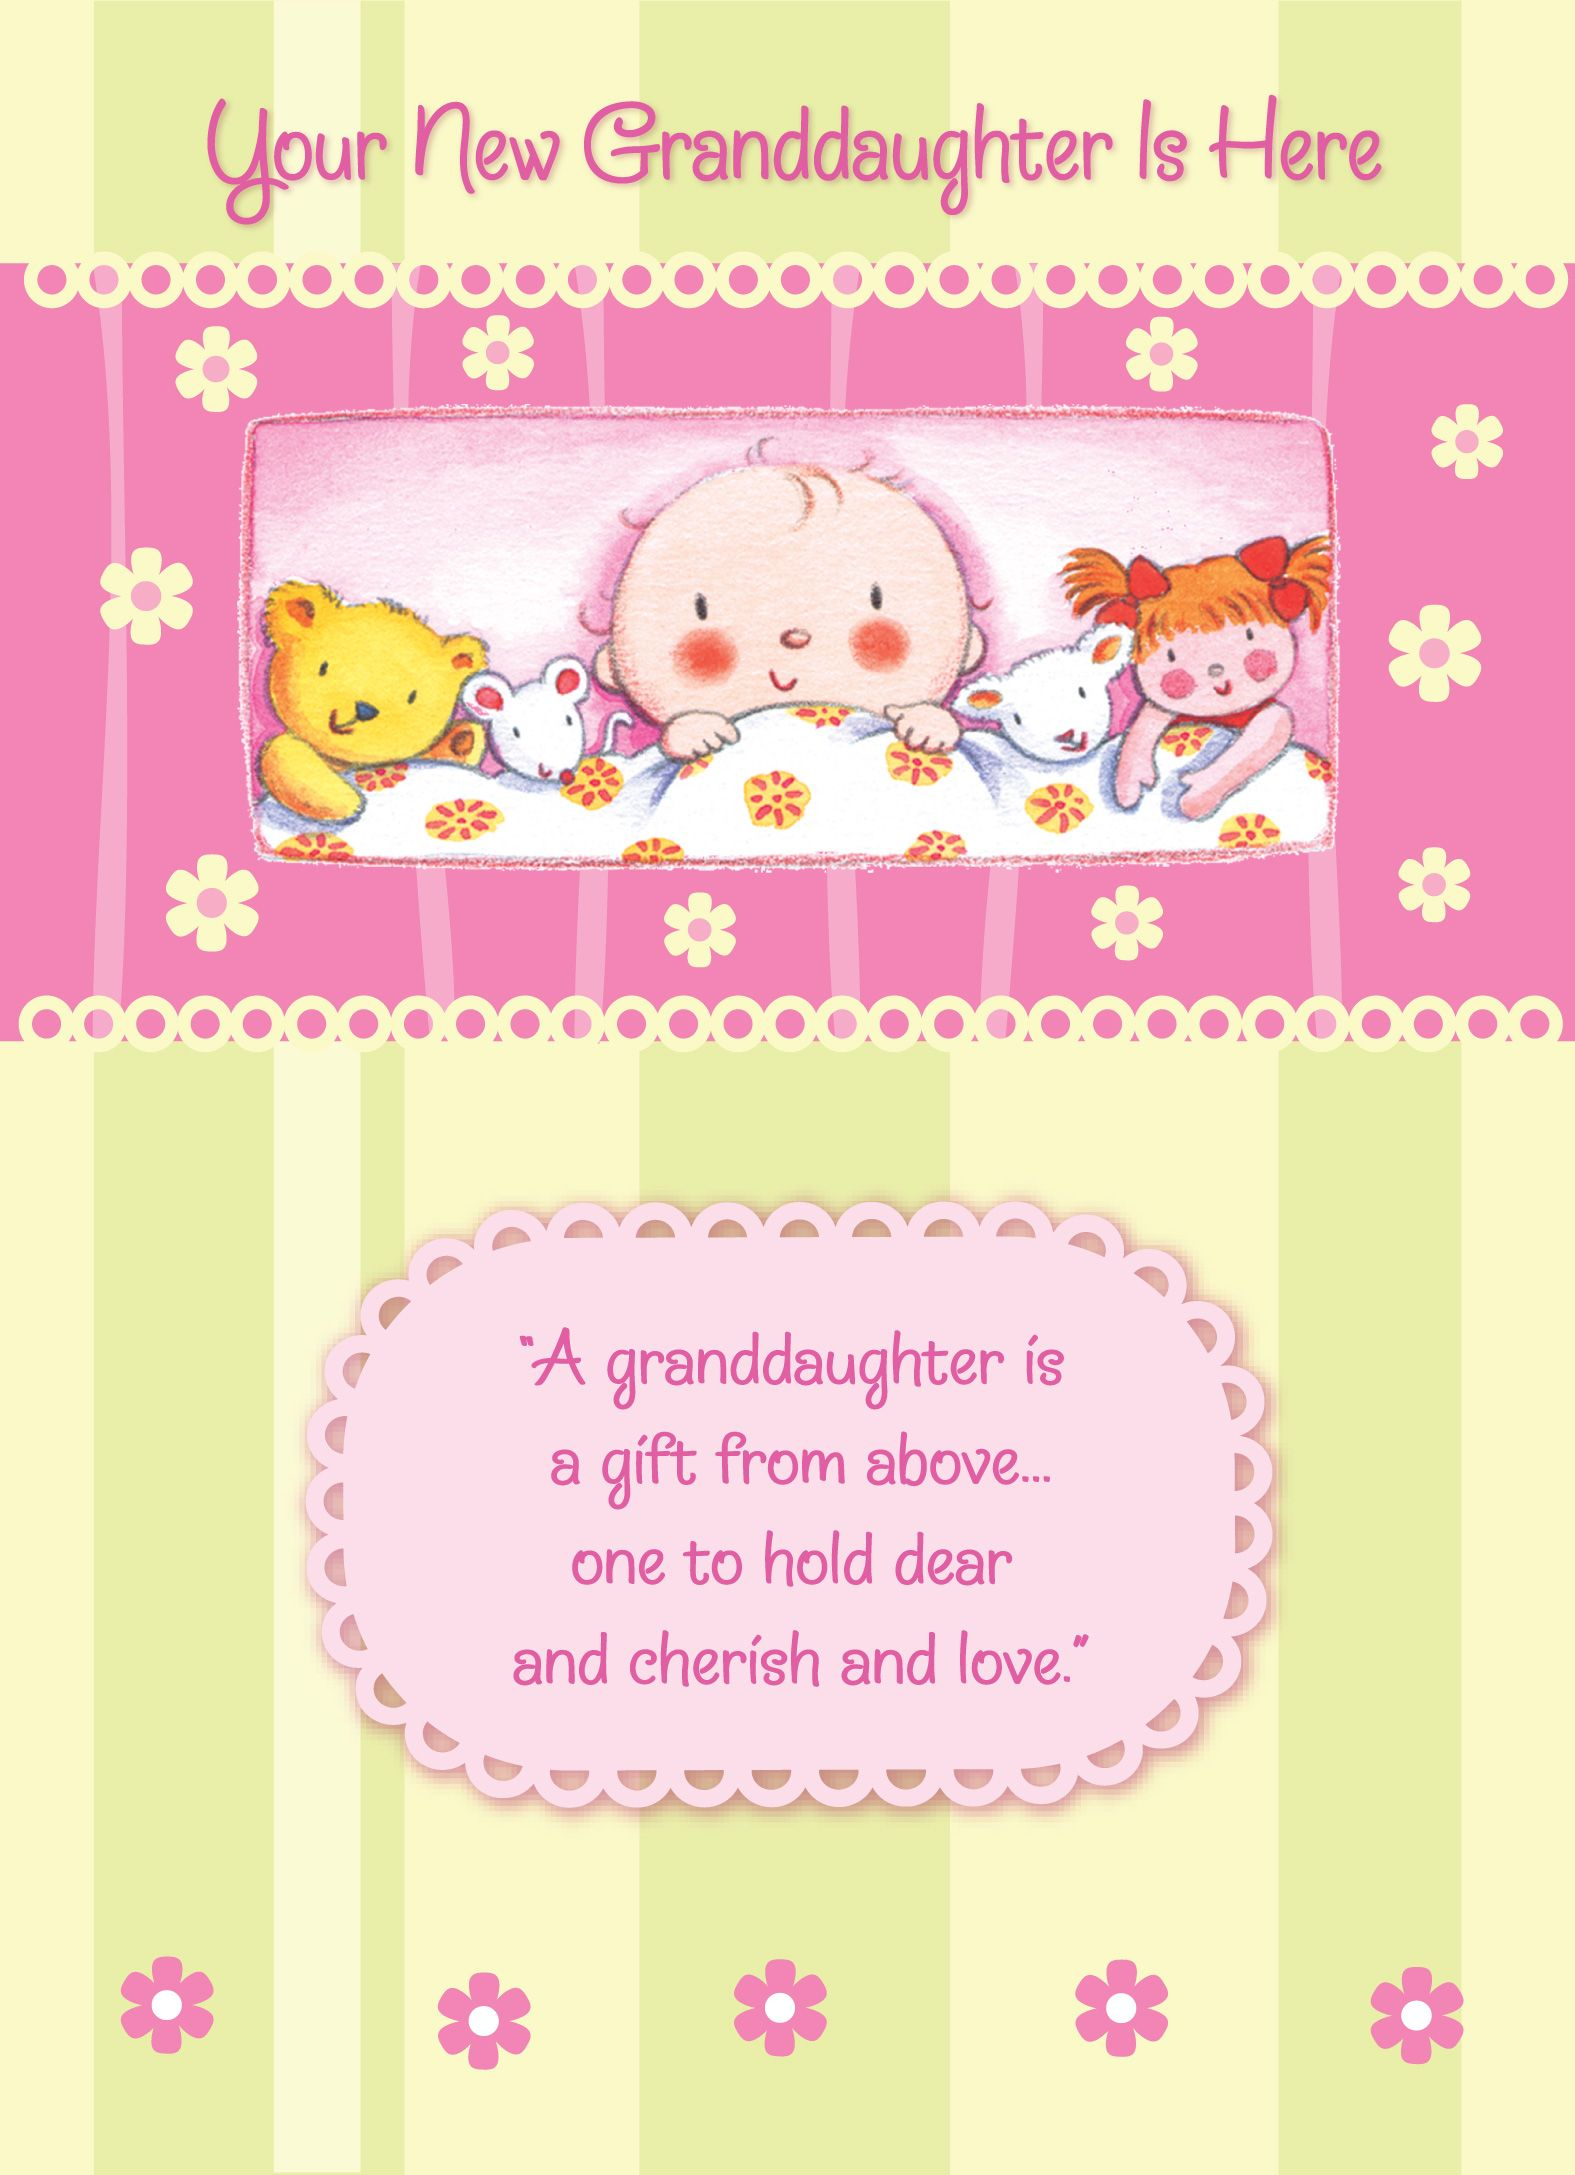 Congratulations On Your New Granddaughter Babygirl Babyshower